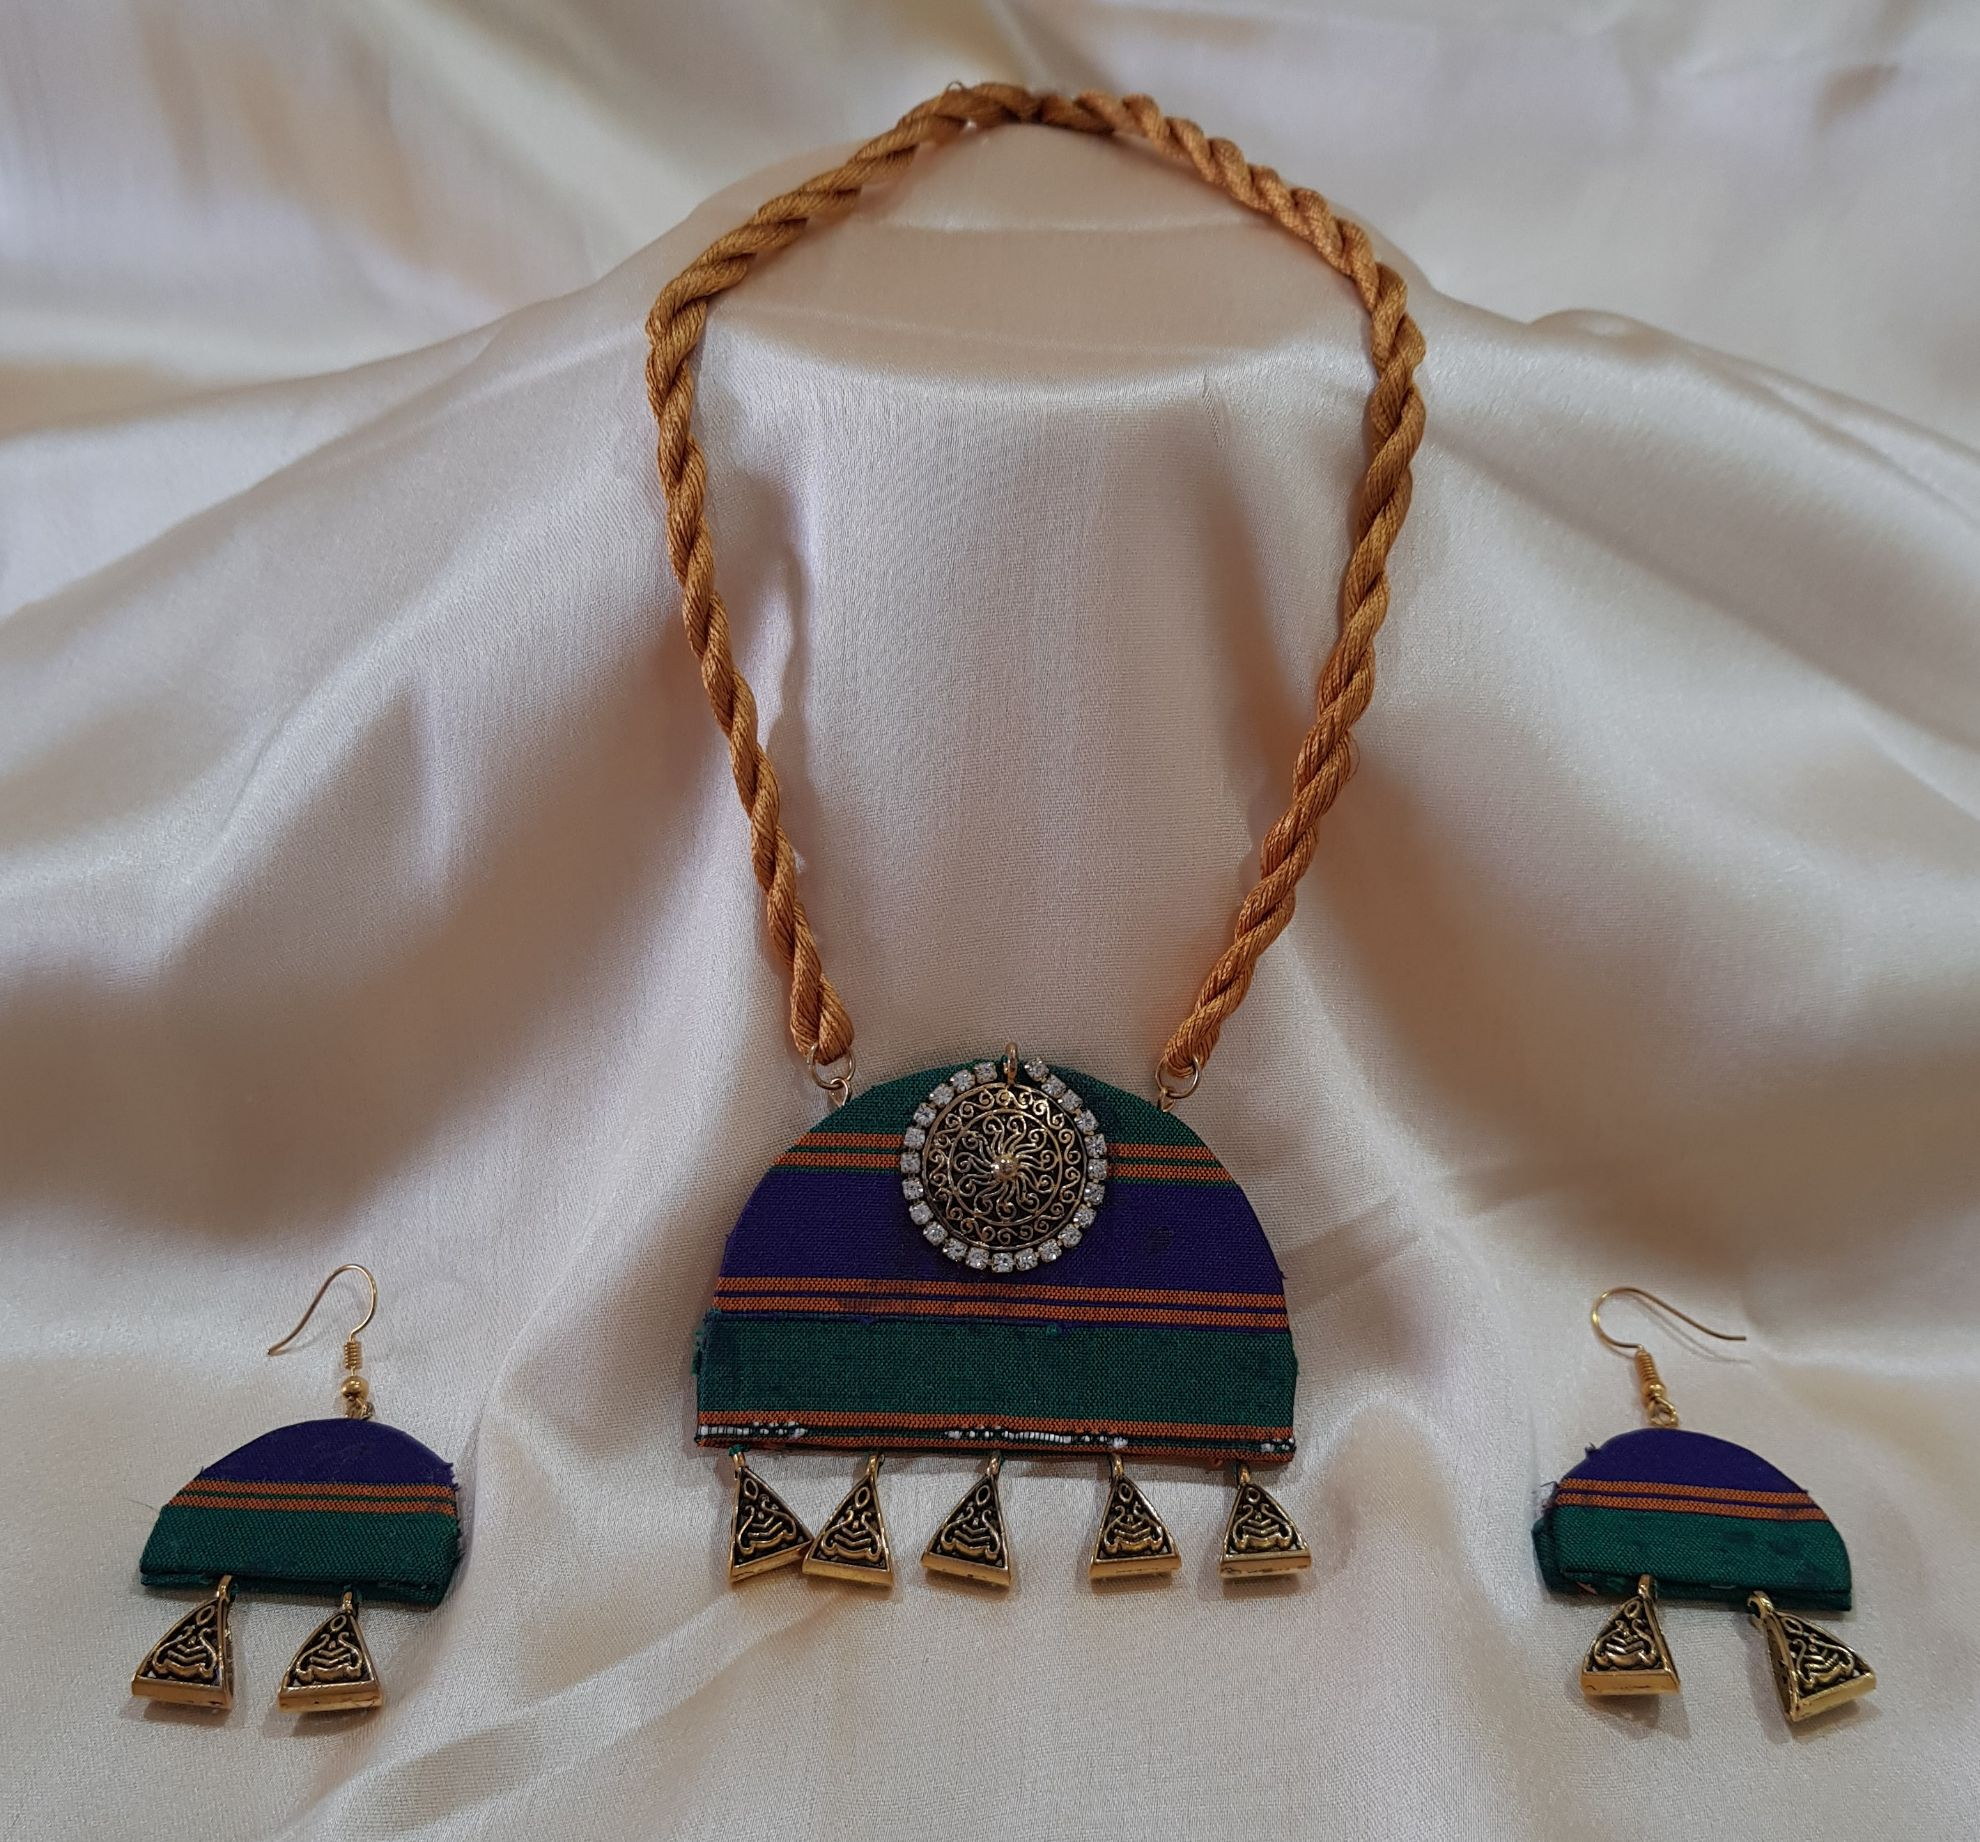 Handcrafted Khun Fabric Jewellery Set GreenBlue : Picture